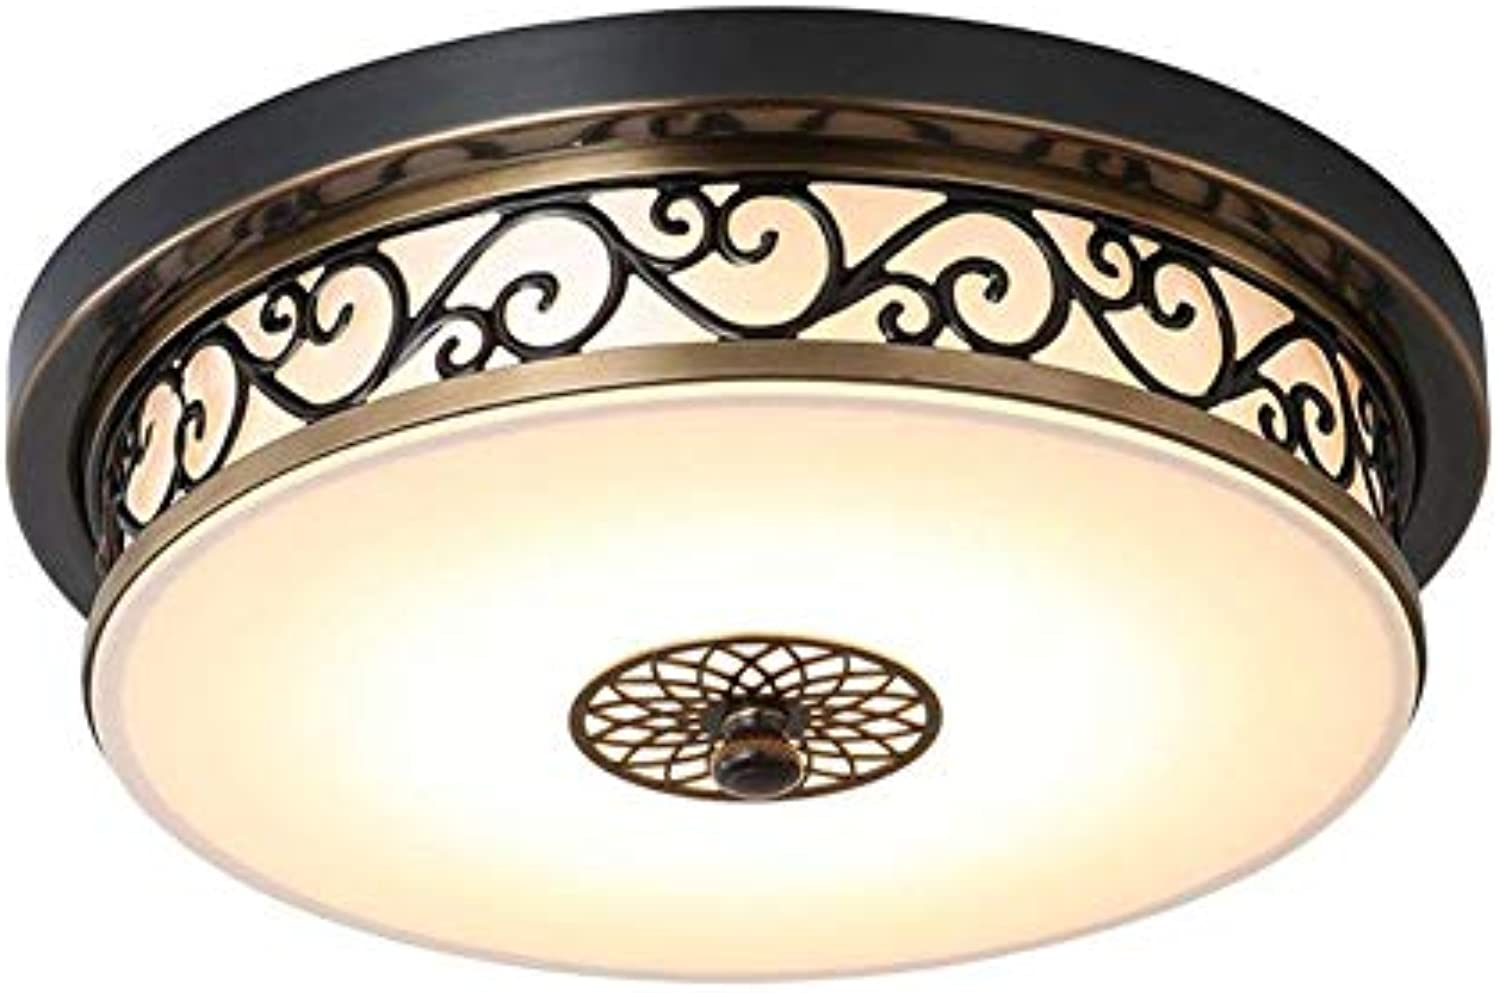 YAYONG Kronleuchter Retro Ceiling Light schwarz Iron Hollow Carved Round Glass Lampen Country House Light,30Cmx30cm